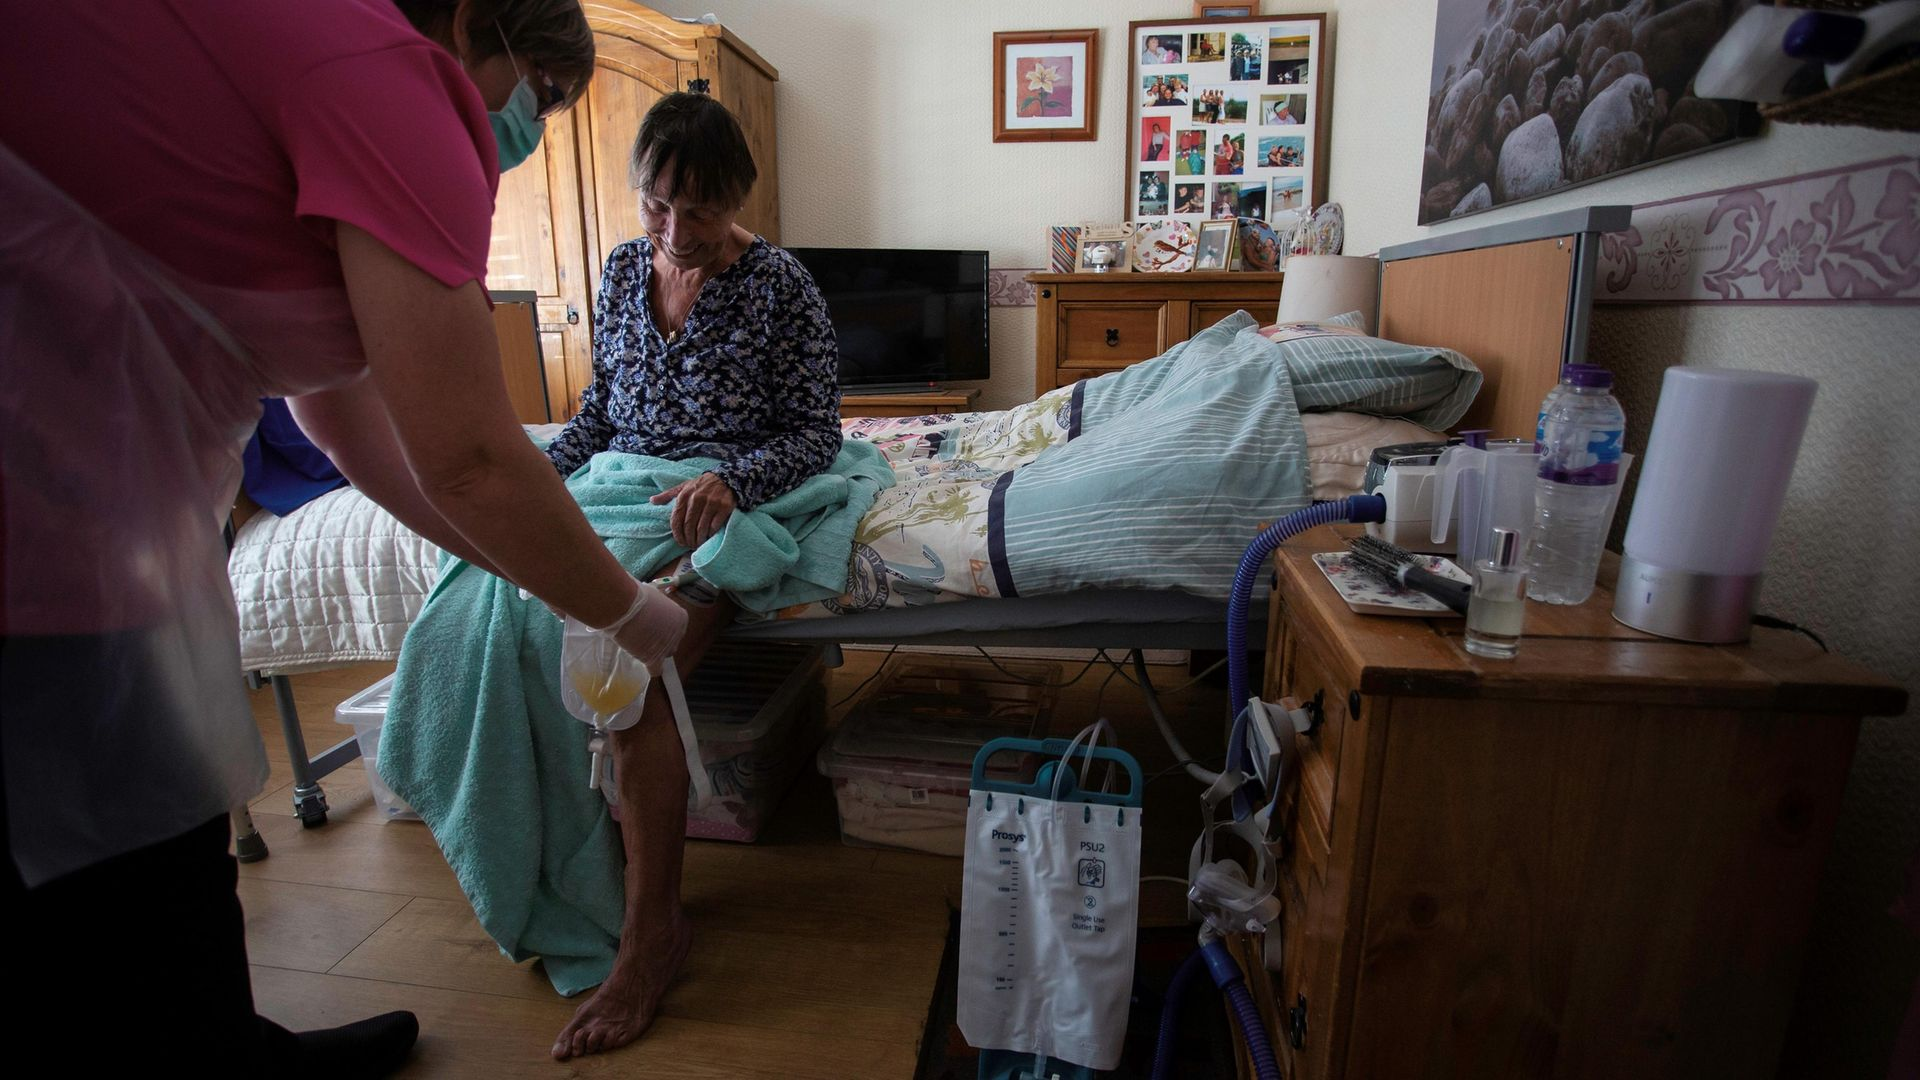 Dawn, a carer, tends to her client Tina during a home visit in Scunthorpe - Credit: AFP via Getty Images